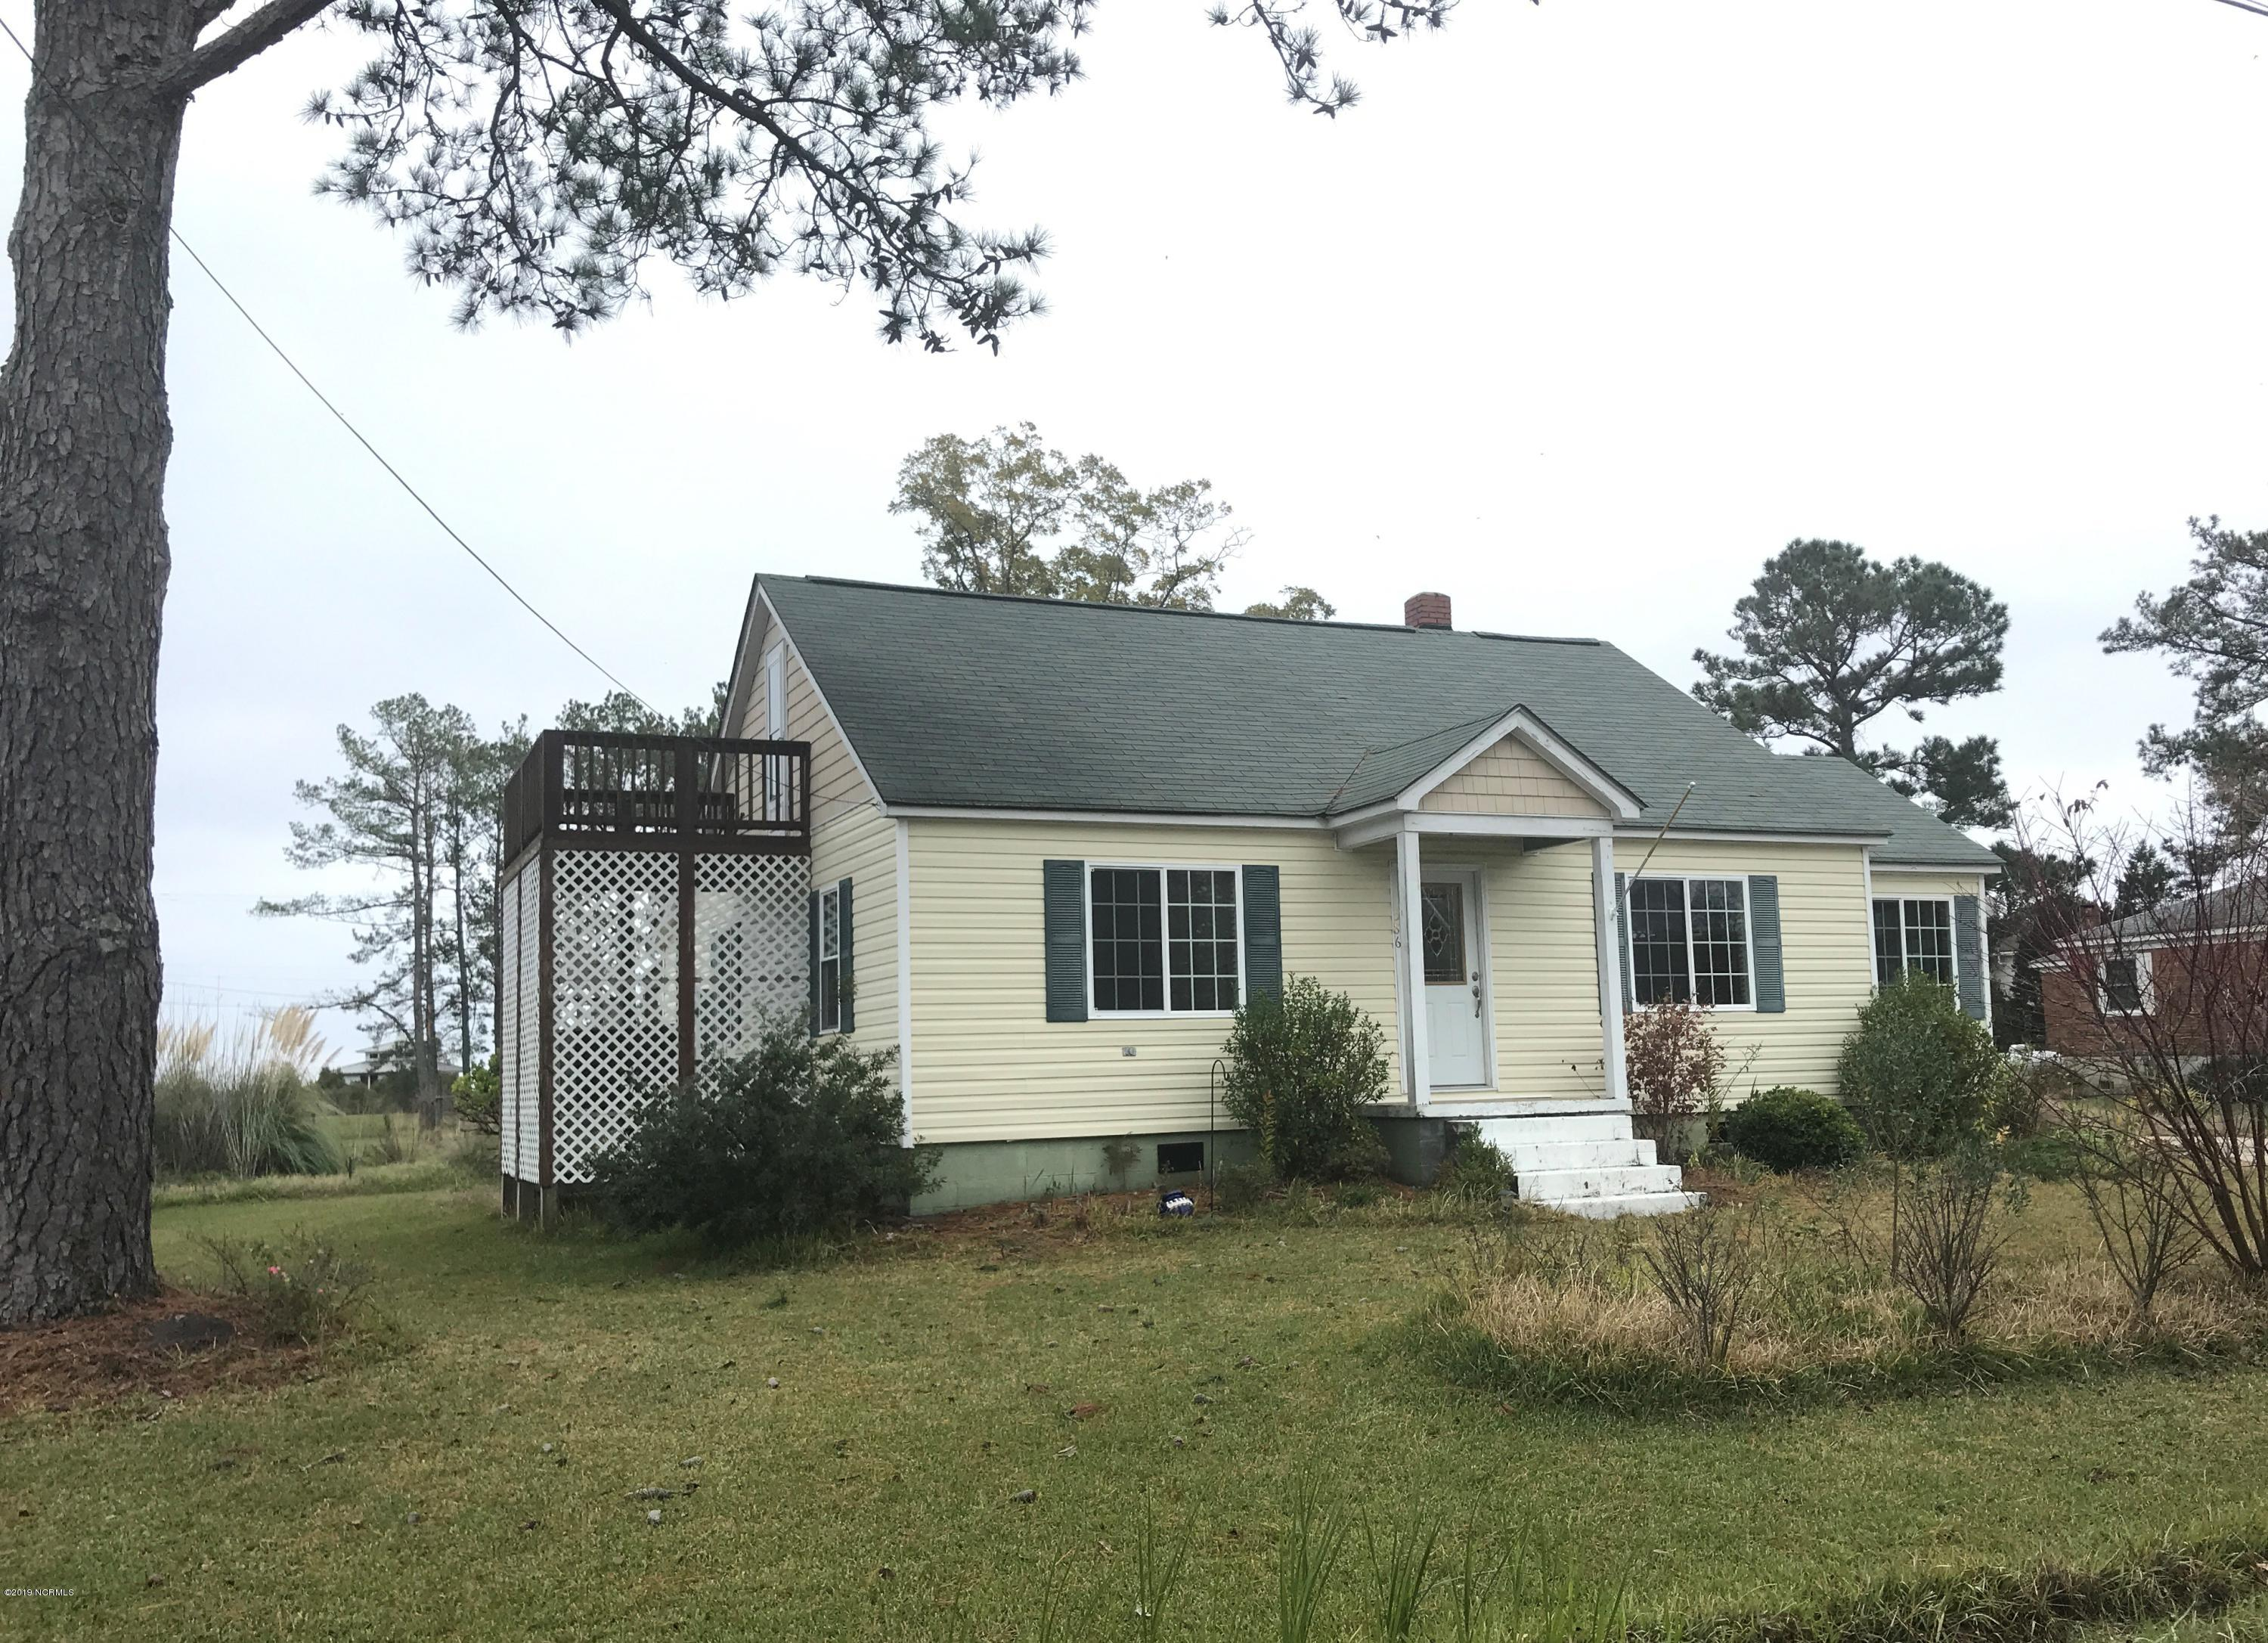 586 Tooley Street, Belhaven, North Carolina 27810, 3 Bedrooms Bedrooms, 8 Rooms Rooms,2 BathroomsBathrooms,Single family residence,For sale,Tooley,100193831